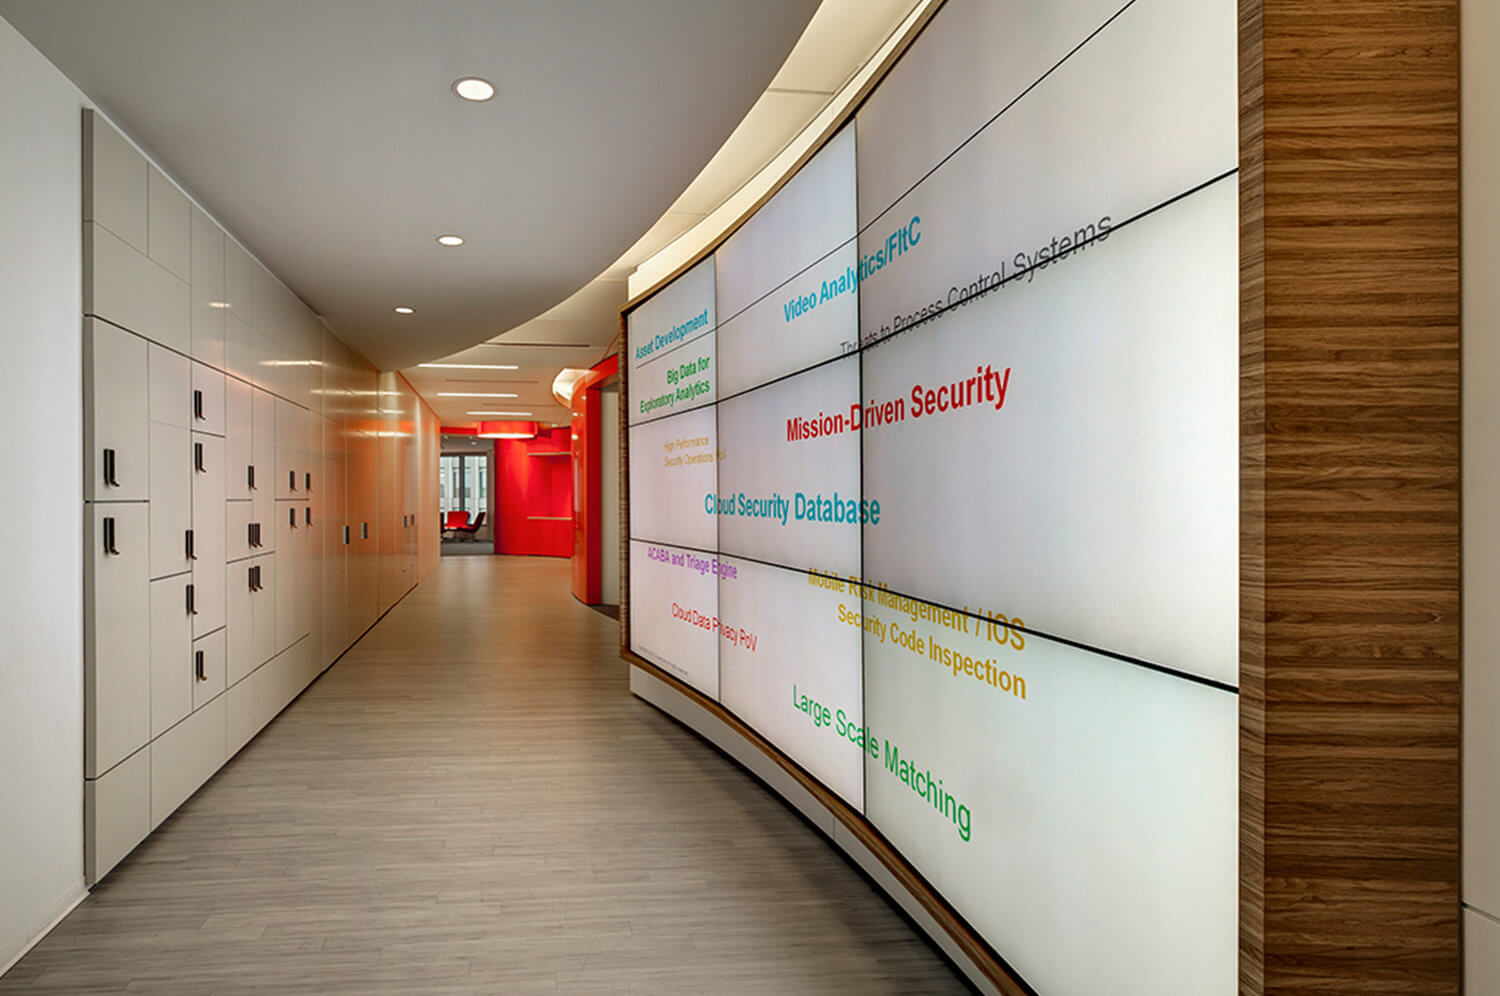 Hallway at Accenture at 800 North Glebe Road in Arlington, Virginia